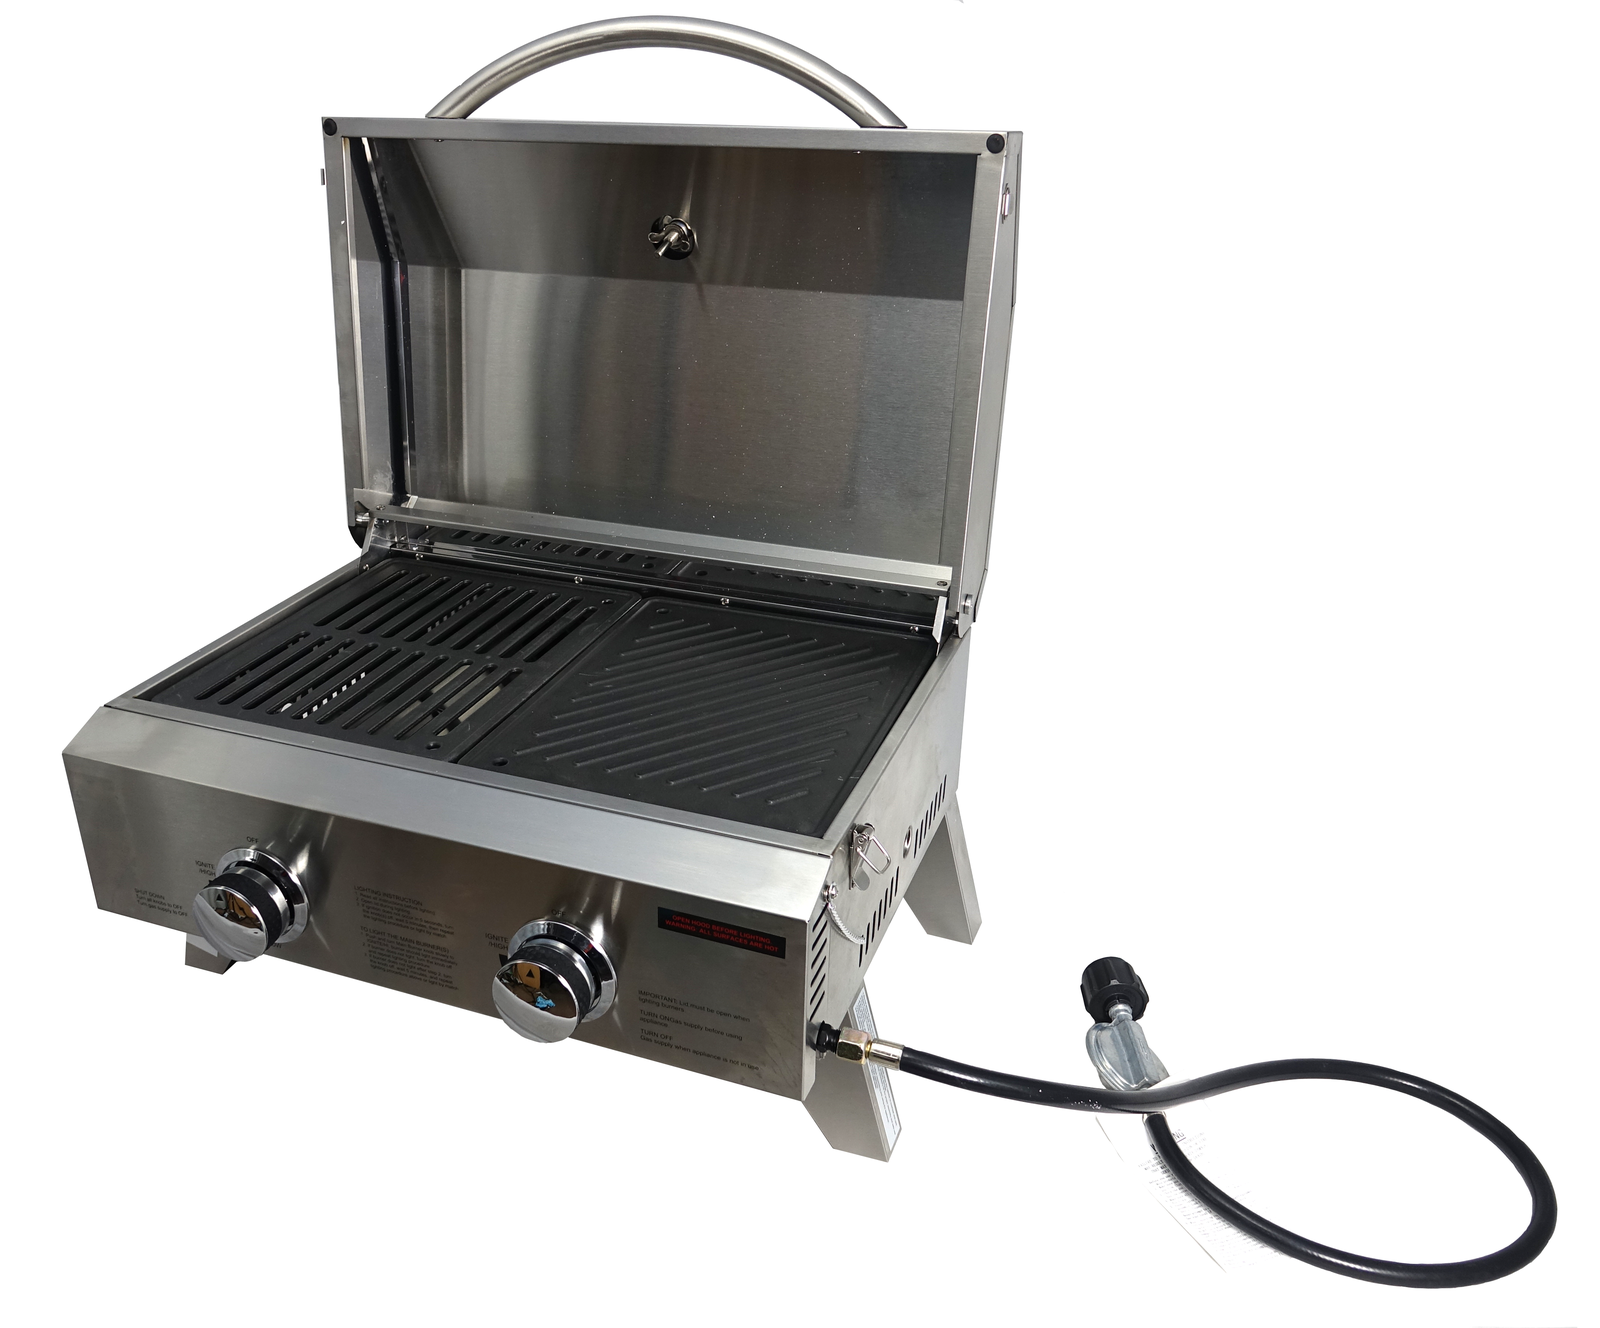 Portable Stainless Steel BBQ - 2 Burner Barbecue with Hotplate & Grill image